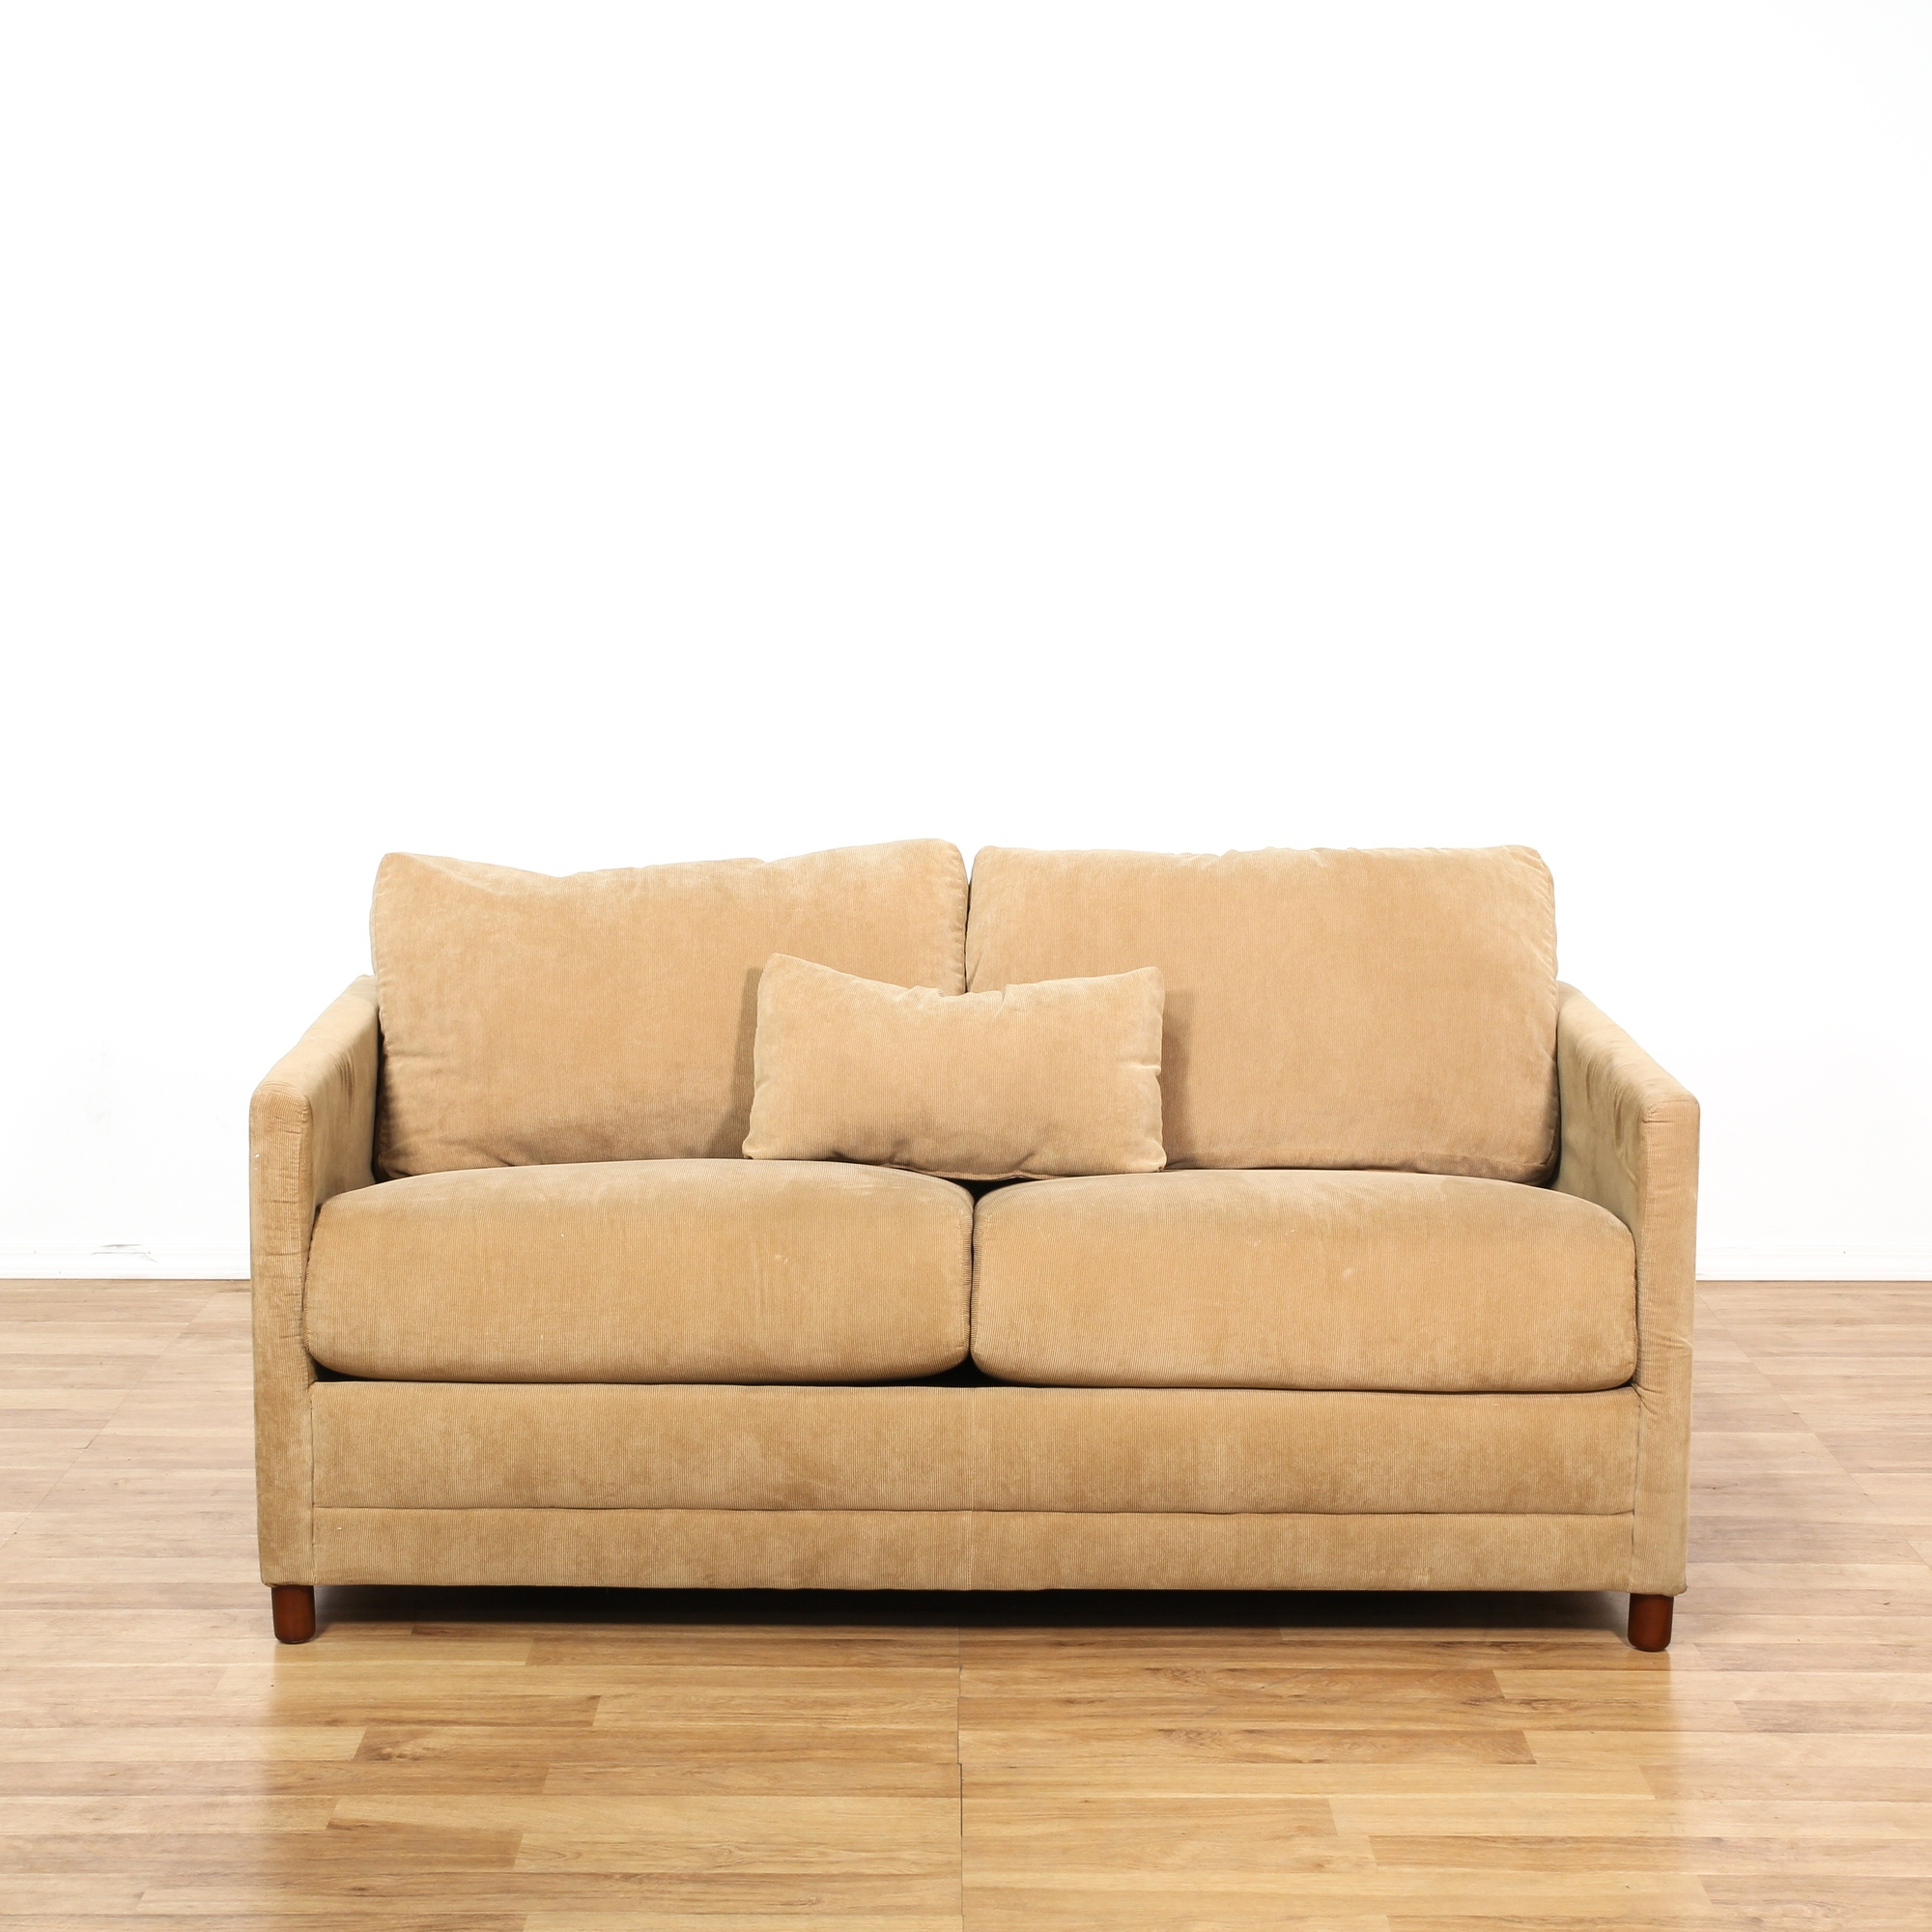 baker brown corduroy loveseat sleeper sofa loveseat